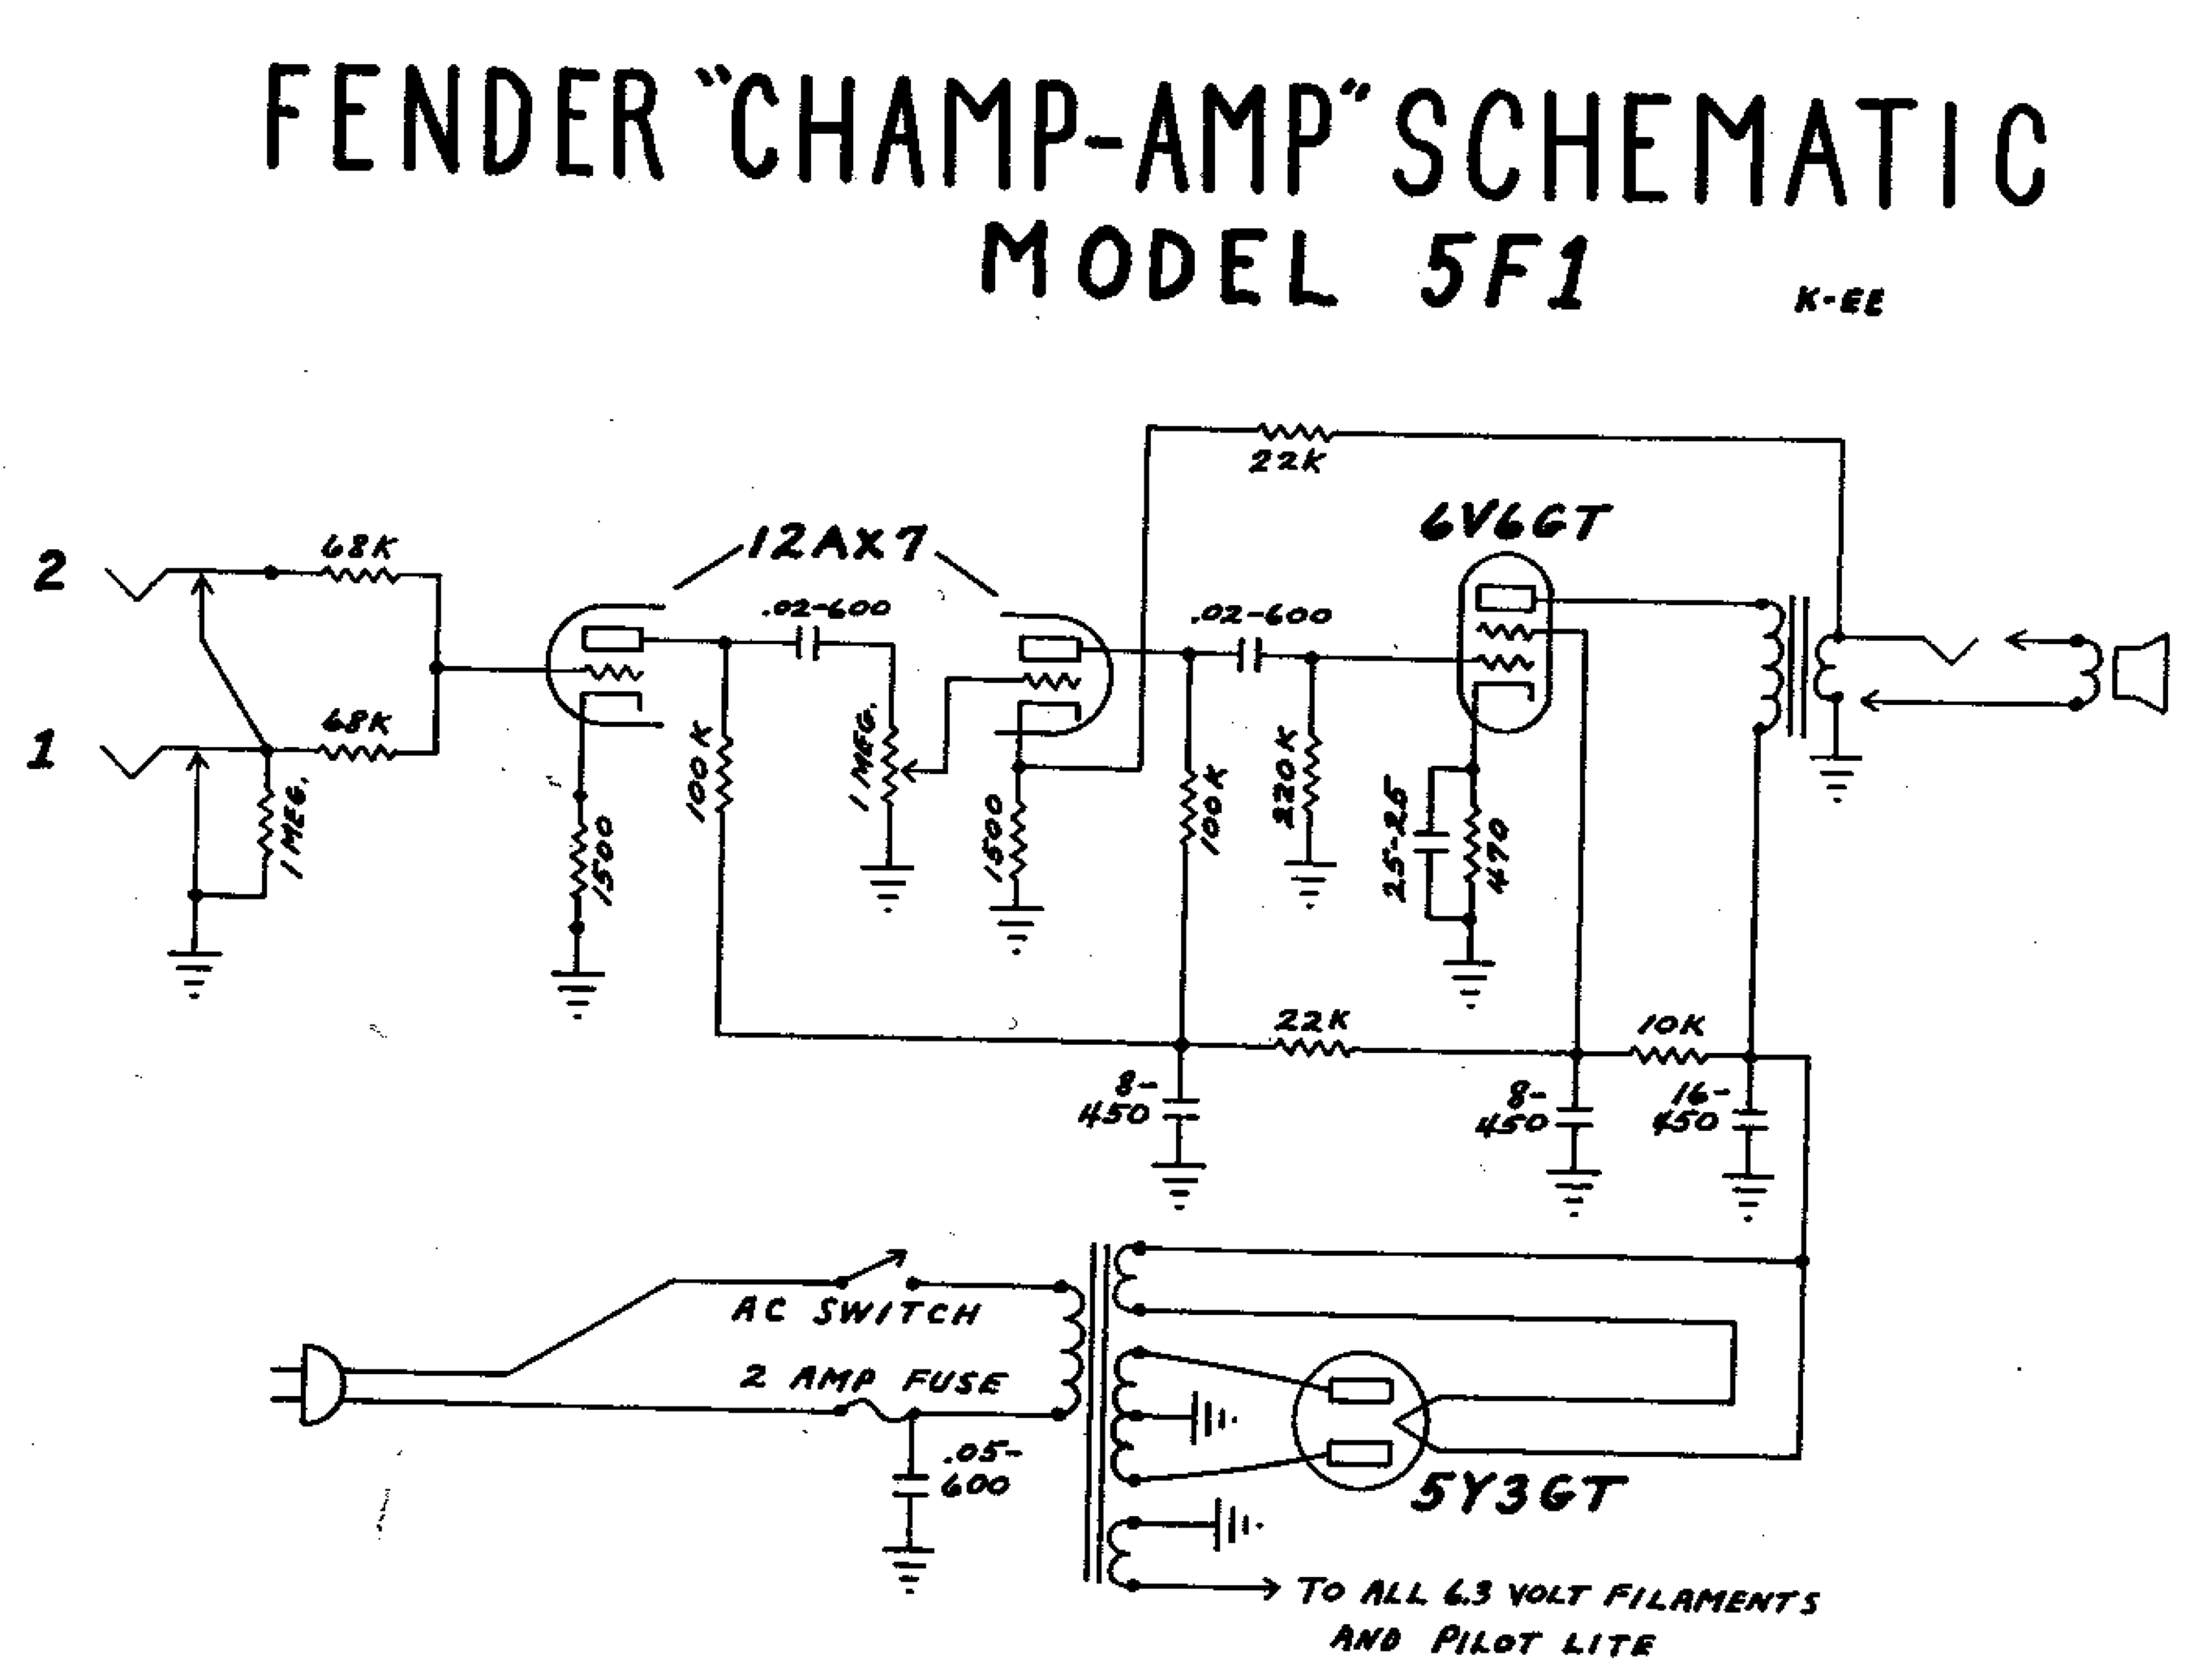 fender amplifier wiring diagram wiring diagram operationsfender amplifier wiring diagram 3 [ 2721 x 2071 Pixel ]